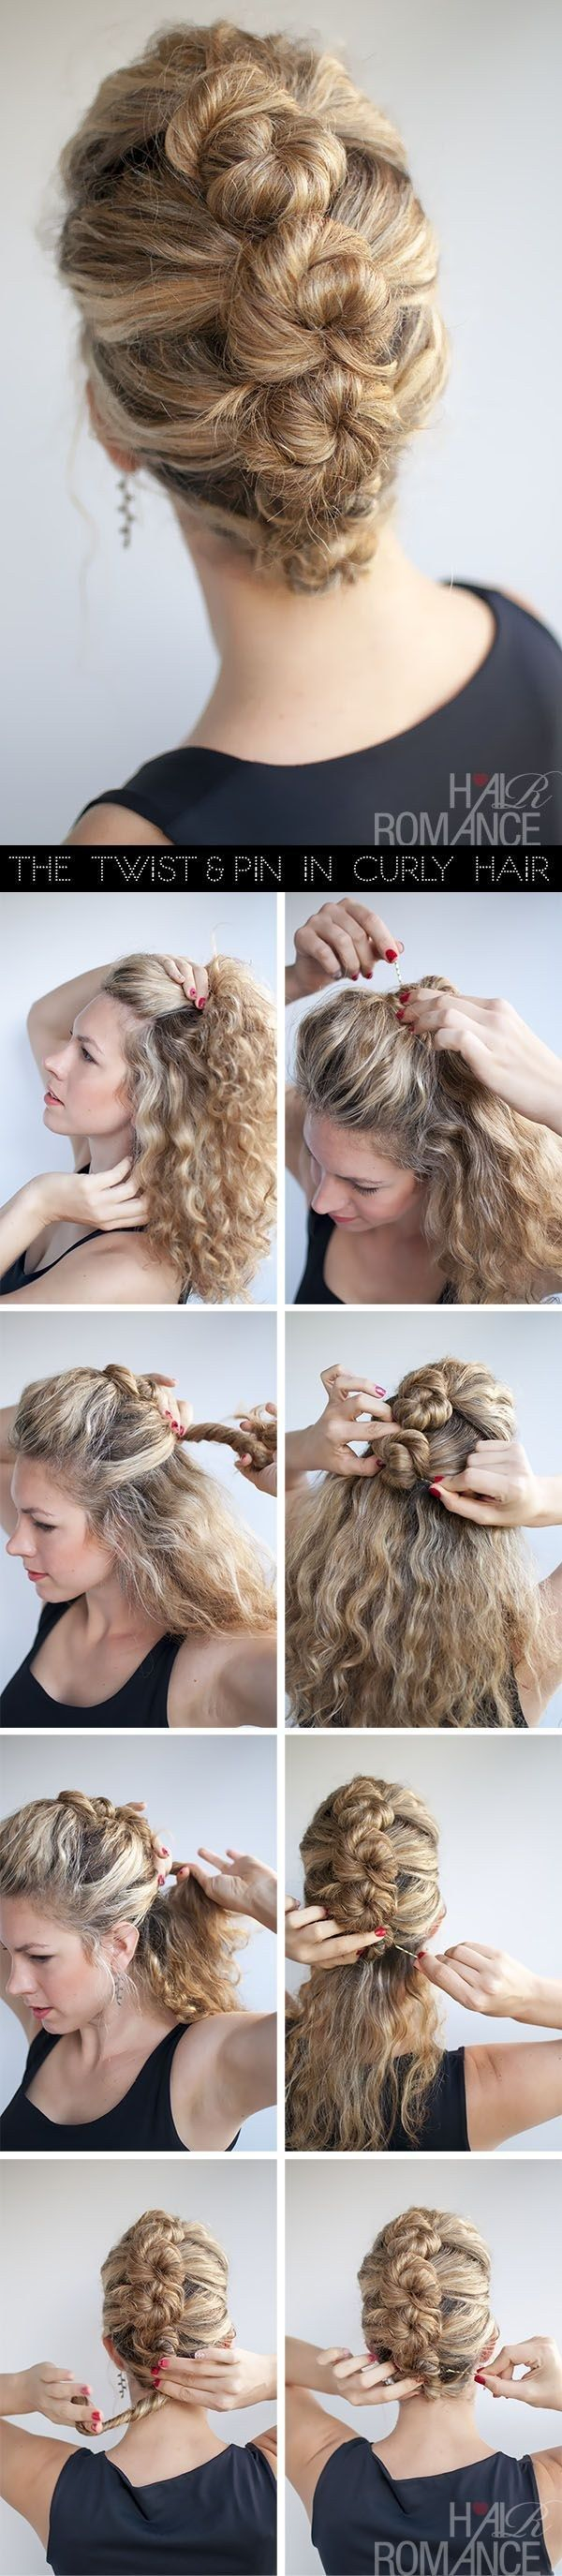 Best hair images on pinterest hair and beauty